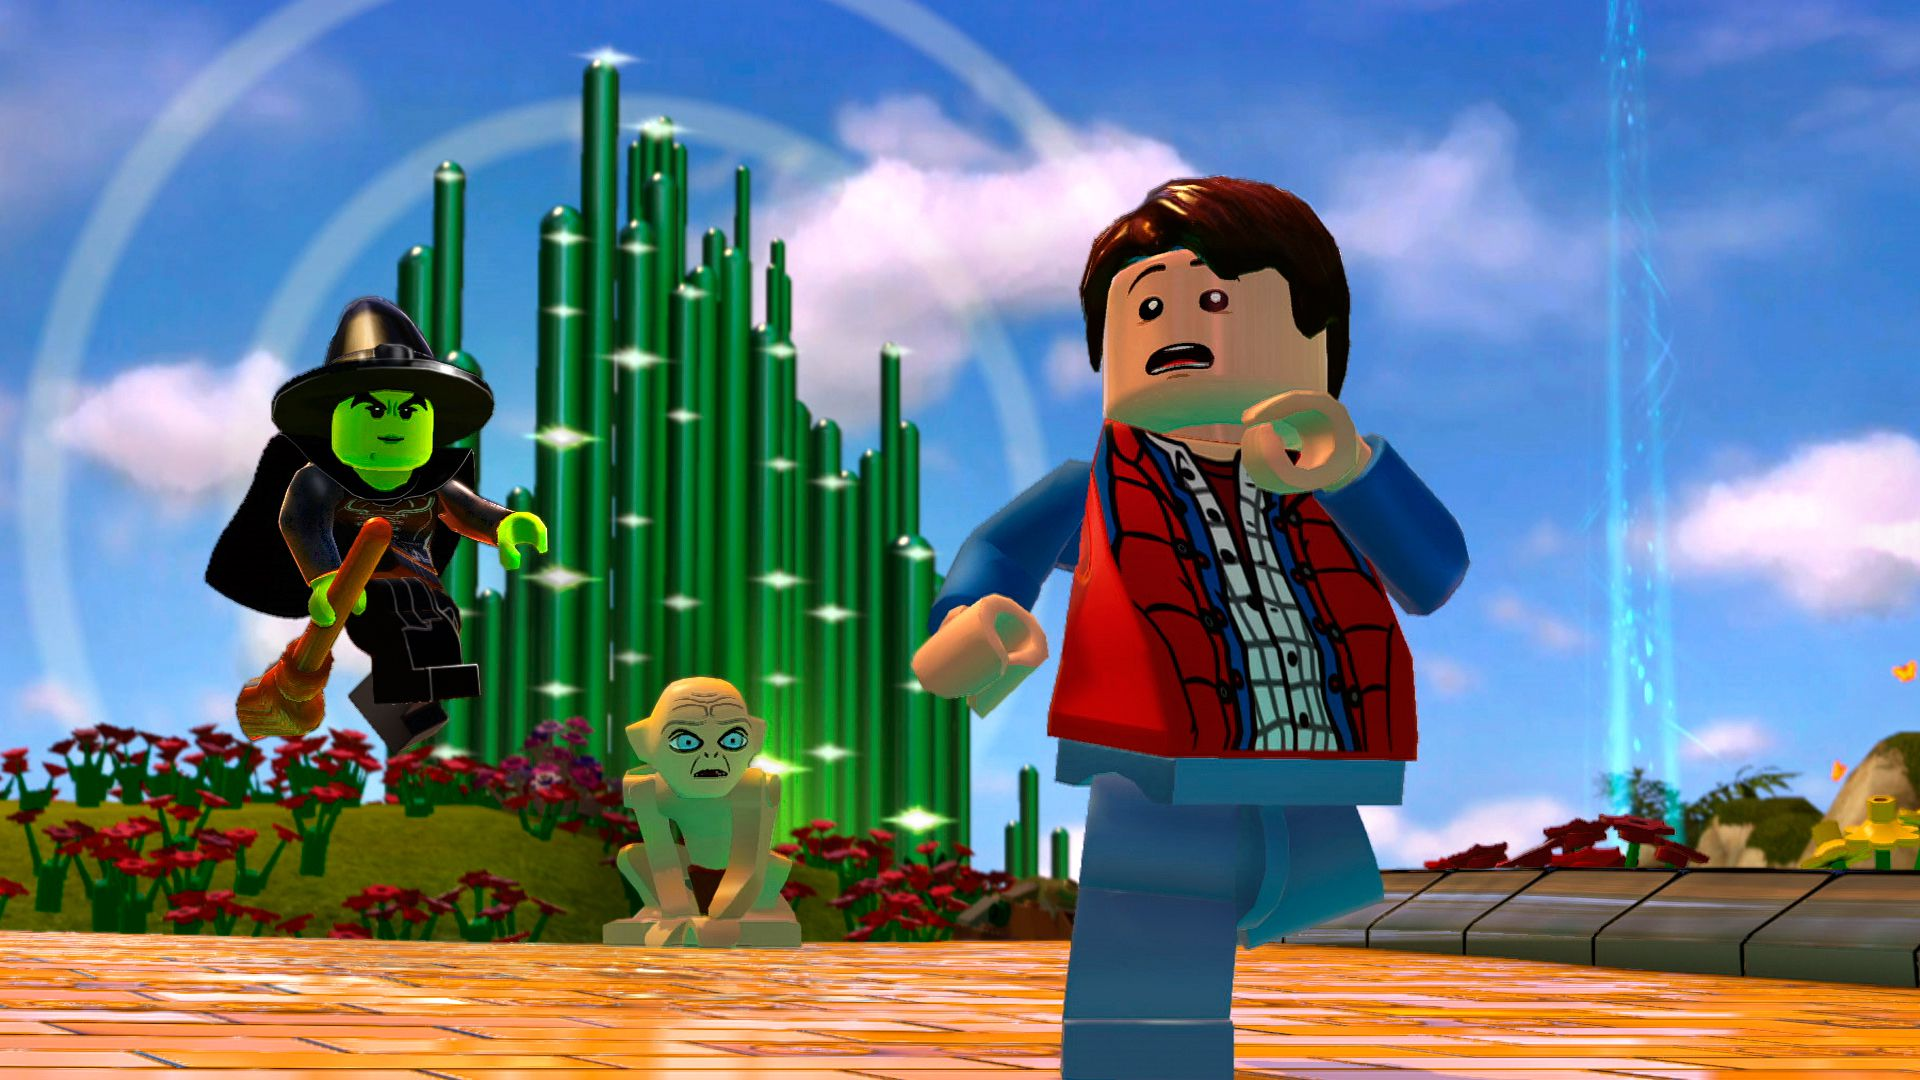 Lego Is Taking On Skylanders With Its Own Version Of Toy